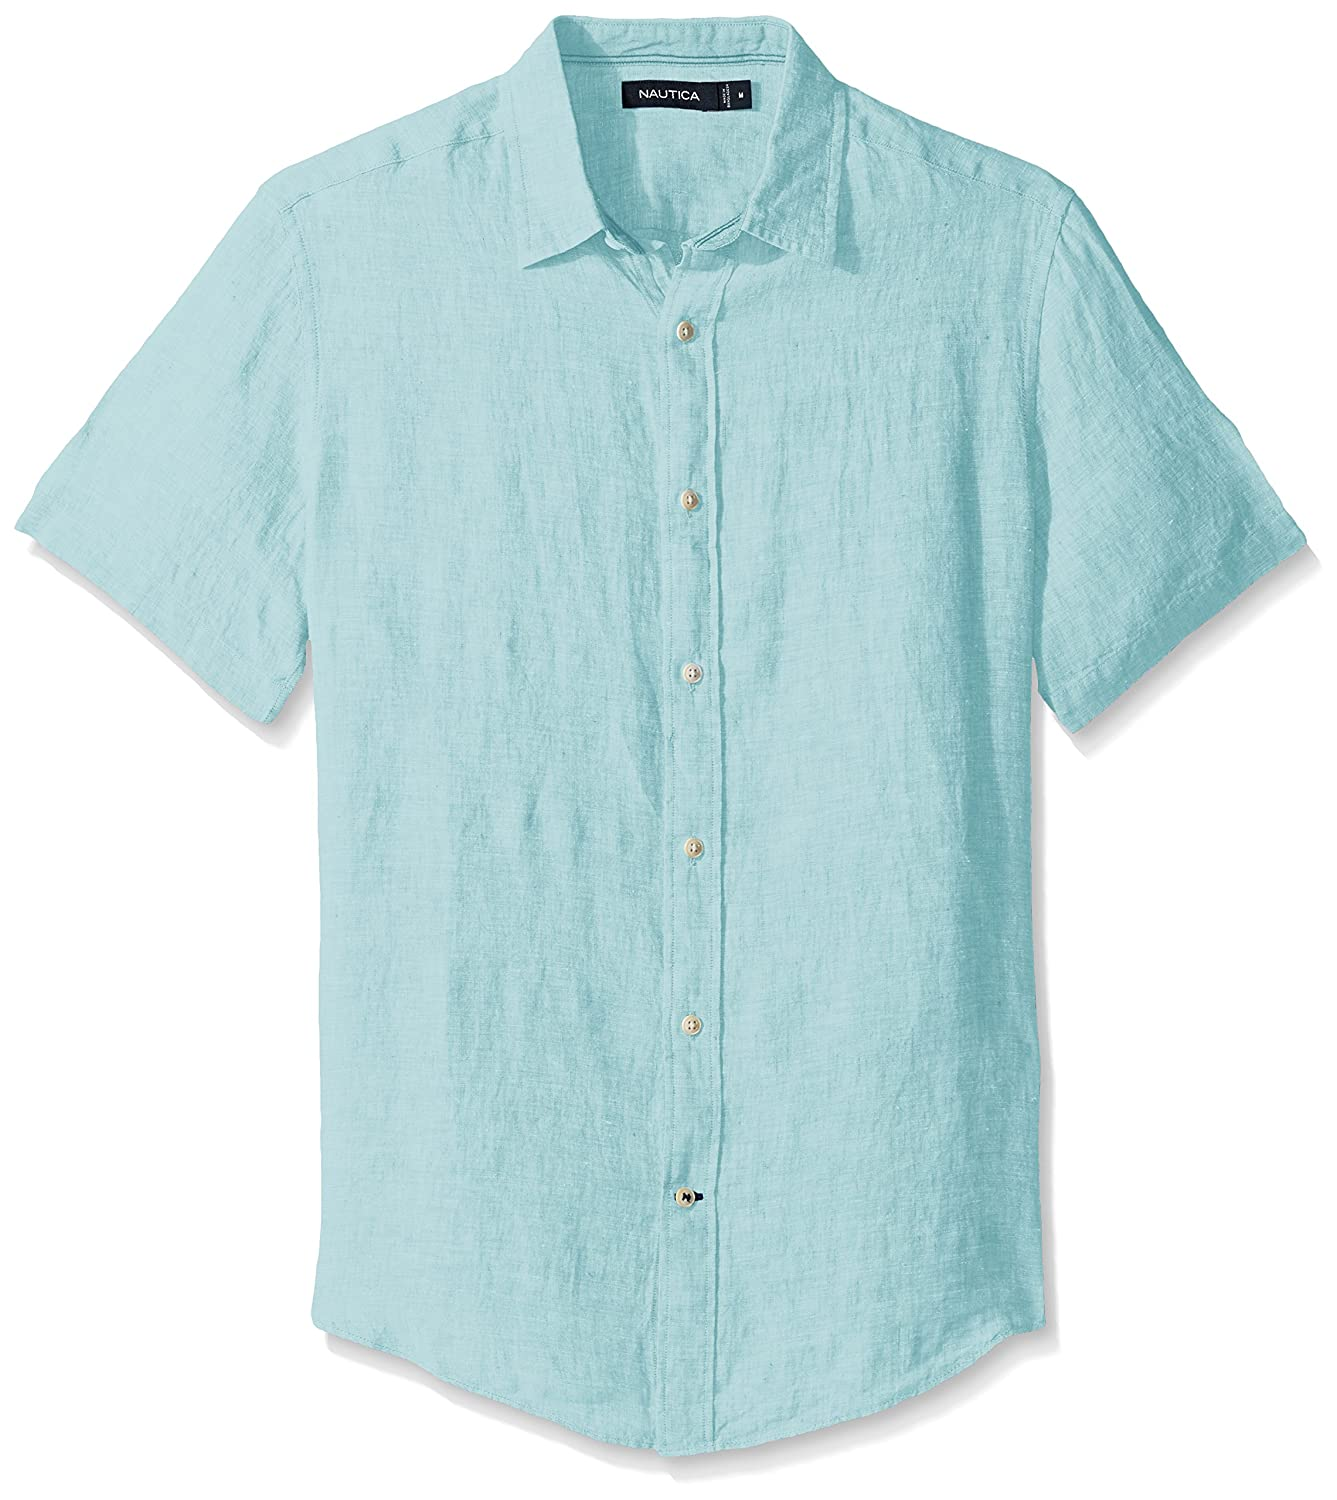 Nautica Classic Fit Printed Chambray Short Sleeve Shirt Cheap Best Seller Cheap 100% Guaranteed 4C7rYPt3